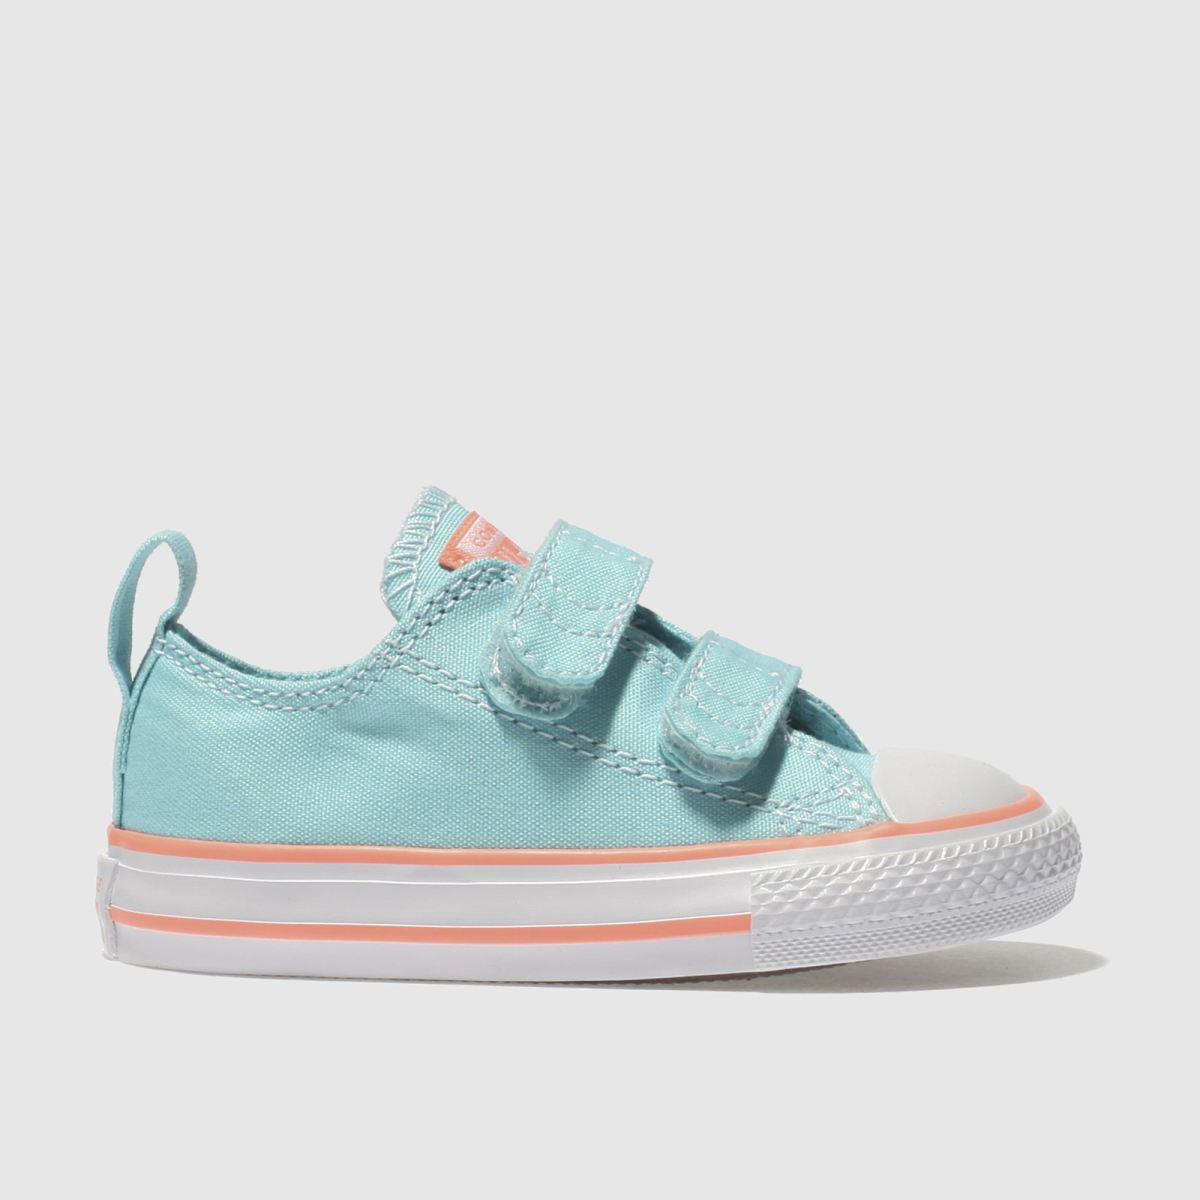 Converse Aqua All Star 2v Trainers Toddler